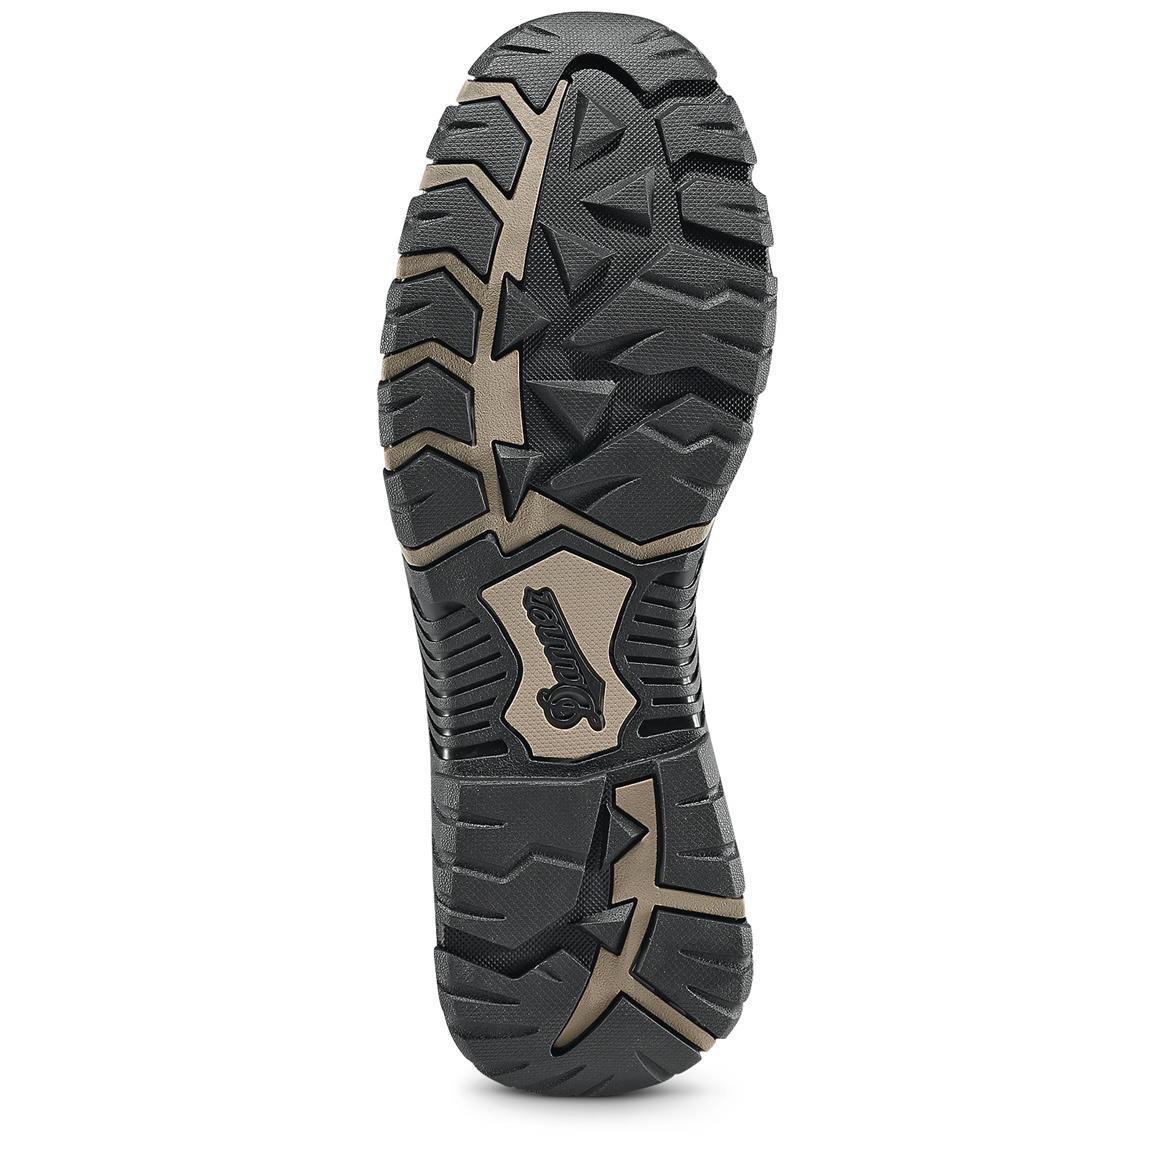 Danner Alpine Ascender outsole with multi-directional lugs for all types of terrain